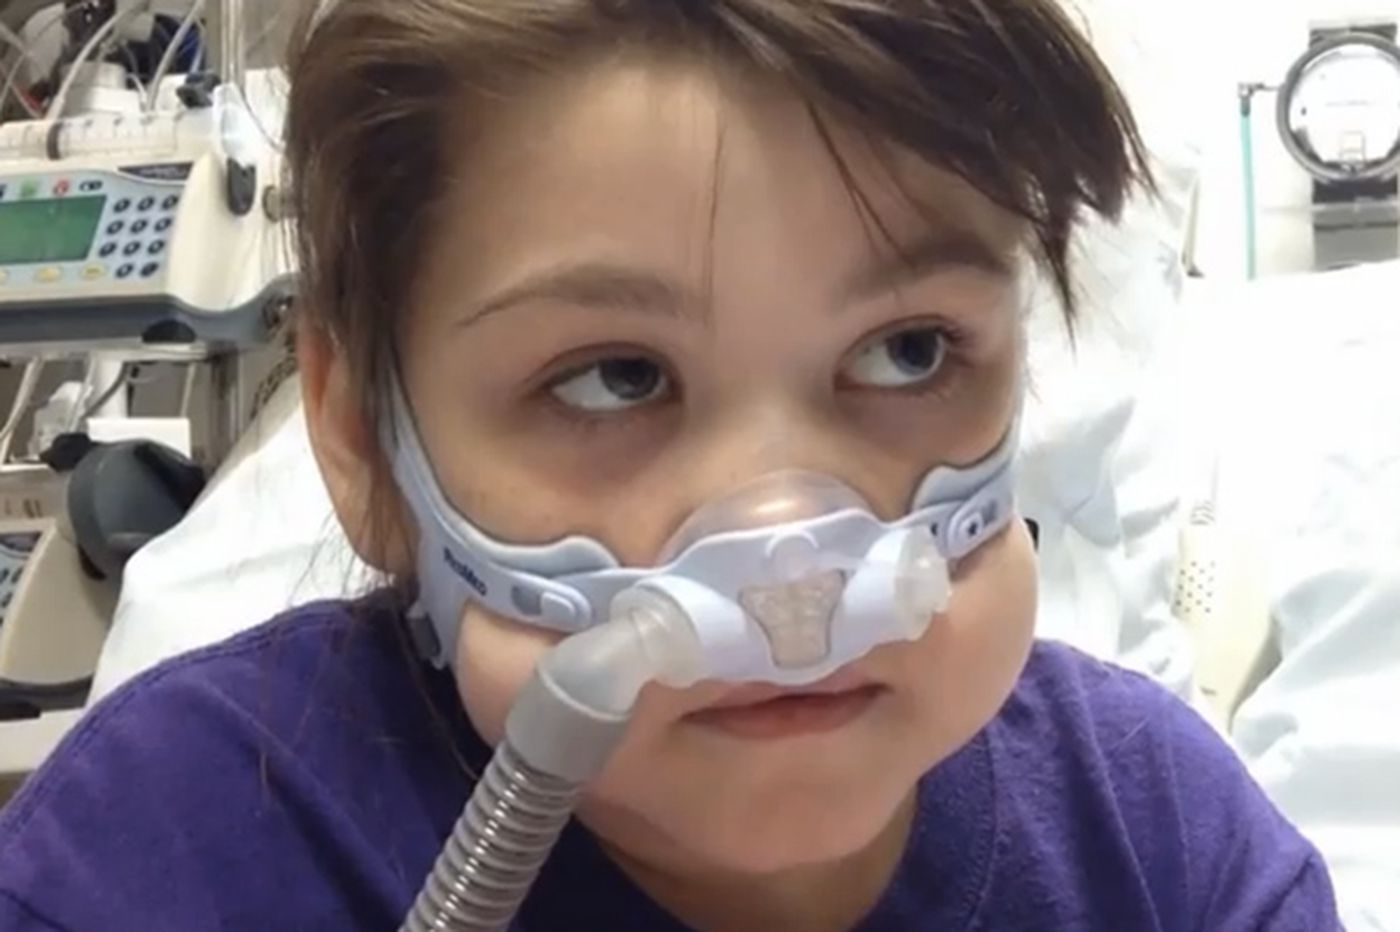 Judge rules temporarily for Pa. girl who needs lung